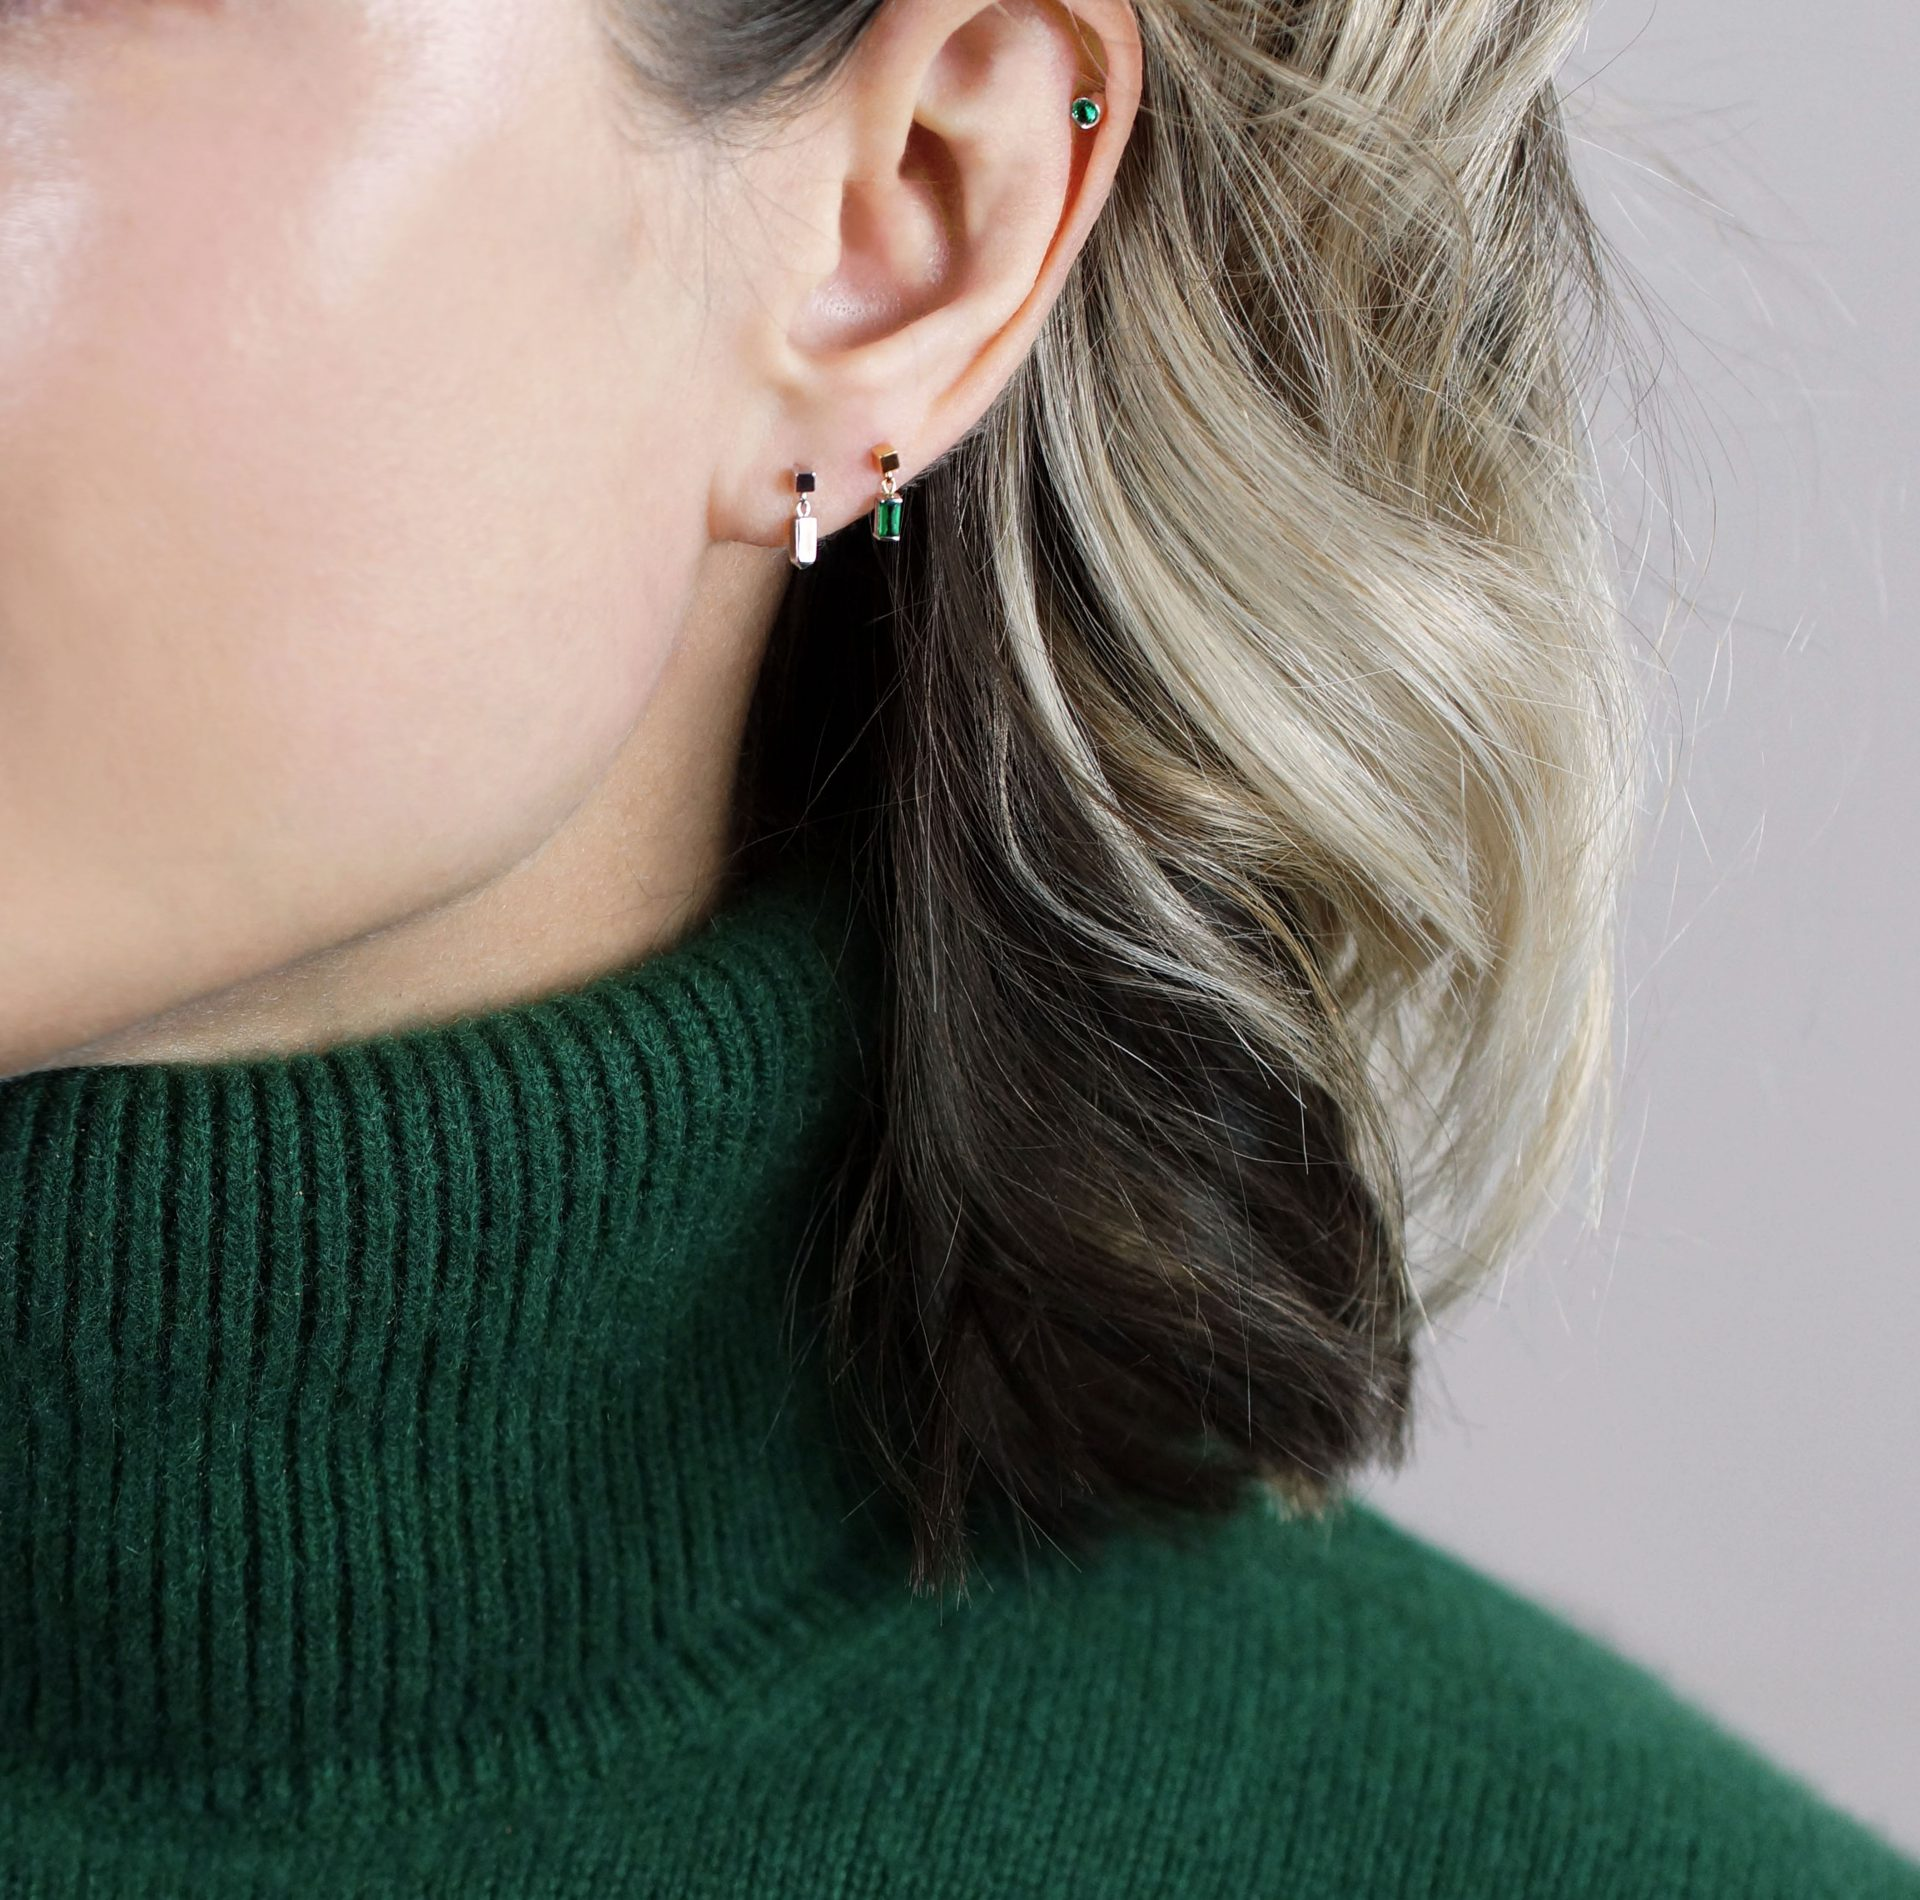 Genuine-emerald-cartilage-piercing-earring-handmade-from-18k-yellow-and-white-gold